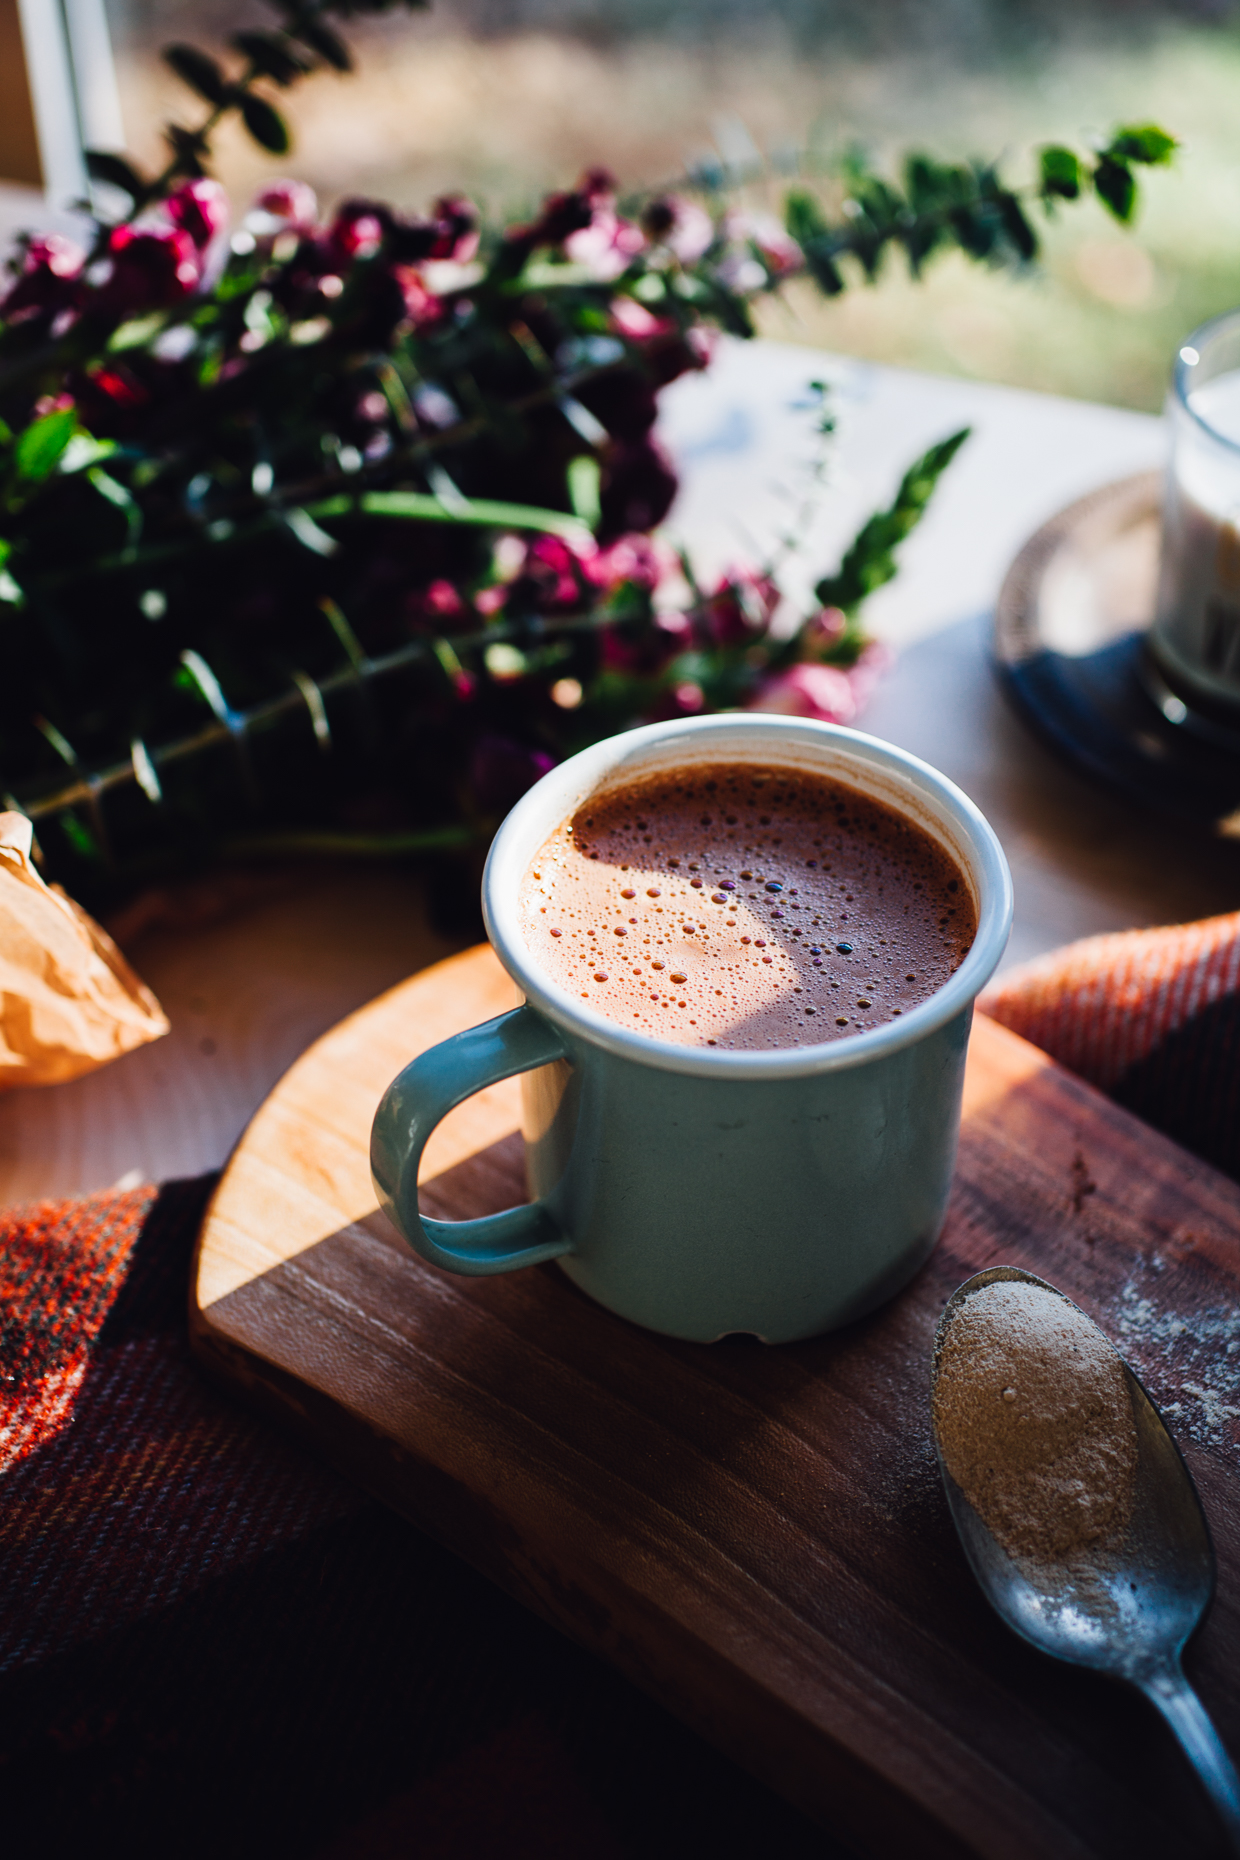 coconut-water-hot-chocolate-3582.jpg